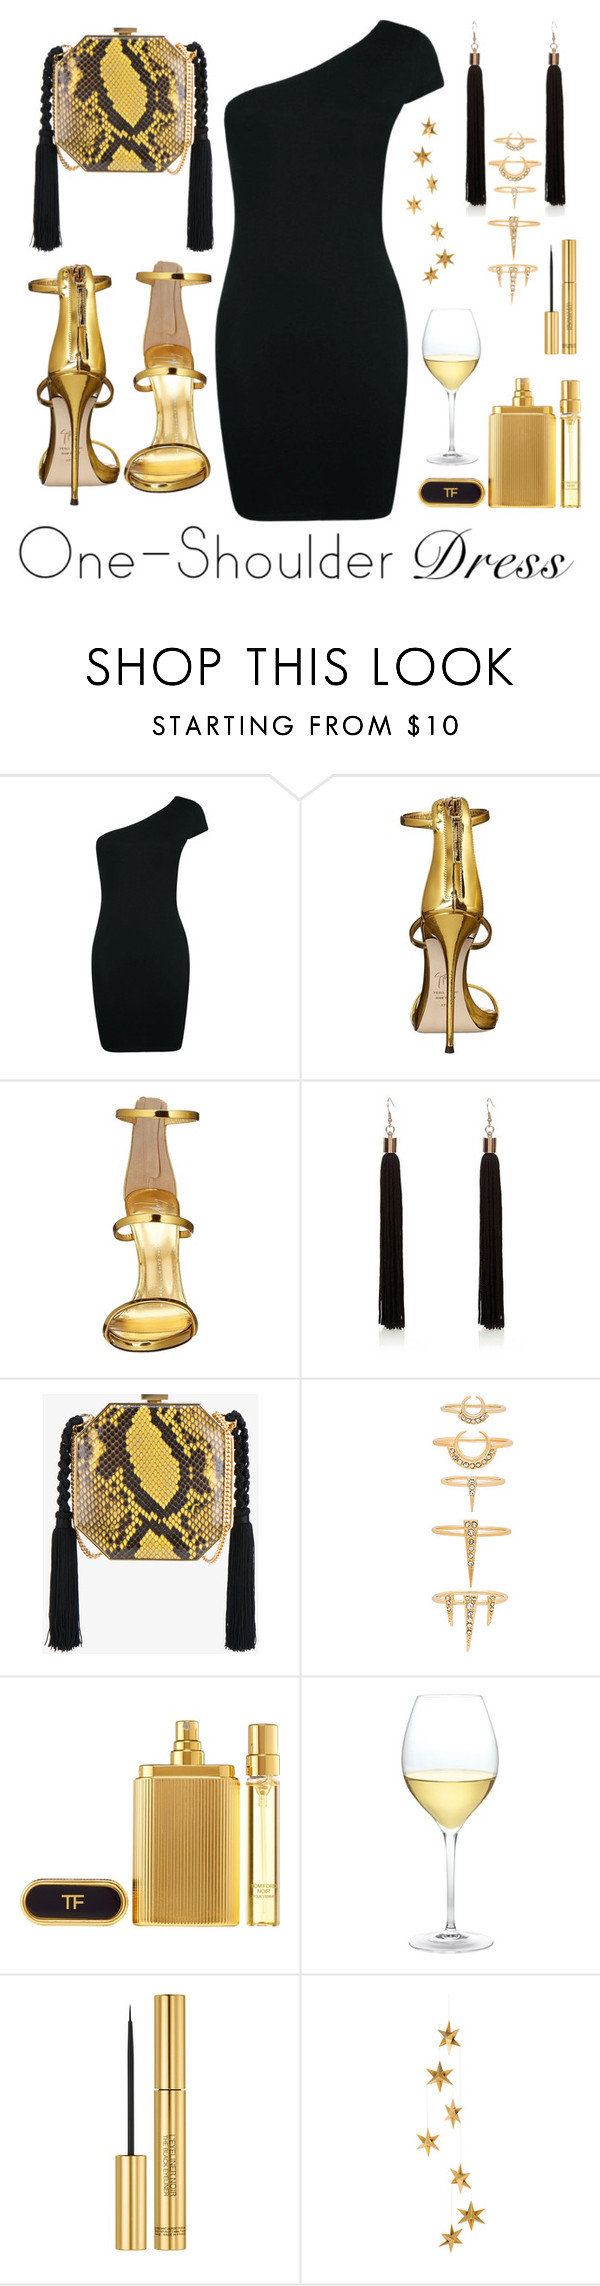 """""""paty girl"""" by sonitsa ❤ liked on Polyvore featuring Boohoo, Giuseppe Zanotti, Alessandra Rich, Luv Aj, Tom Ford, Nordstrom, Yves Saint Laurent and Livingly"""